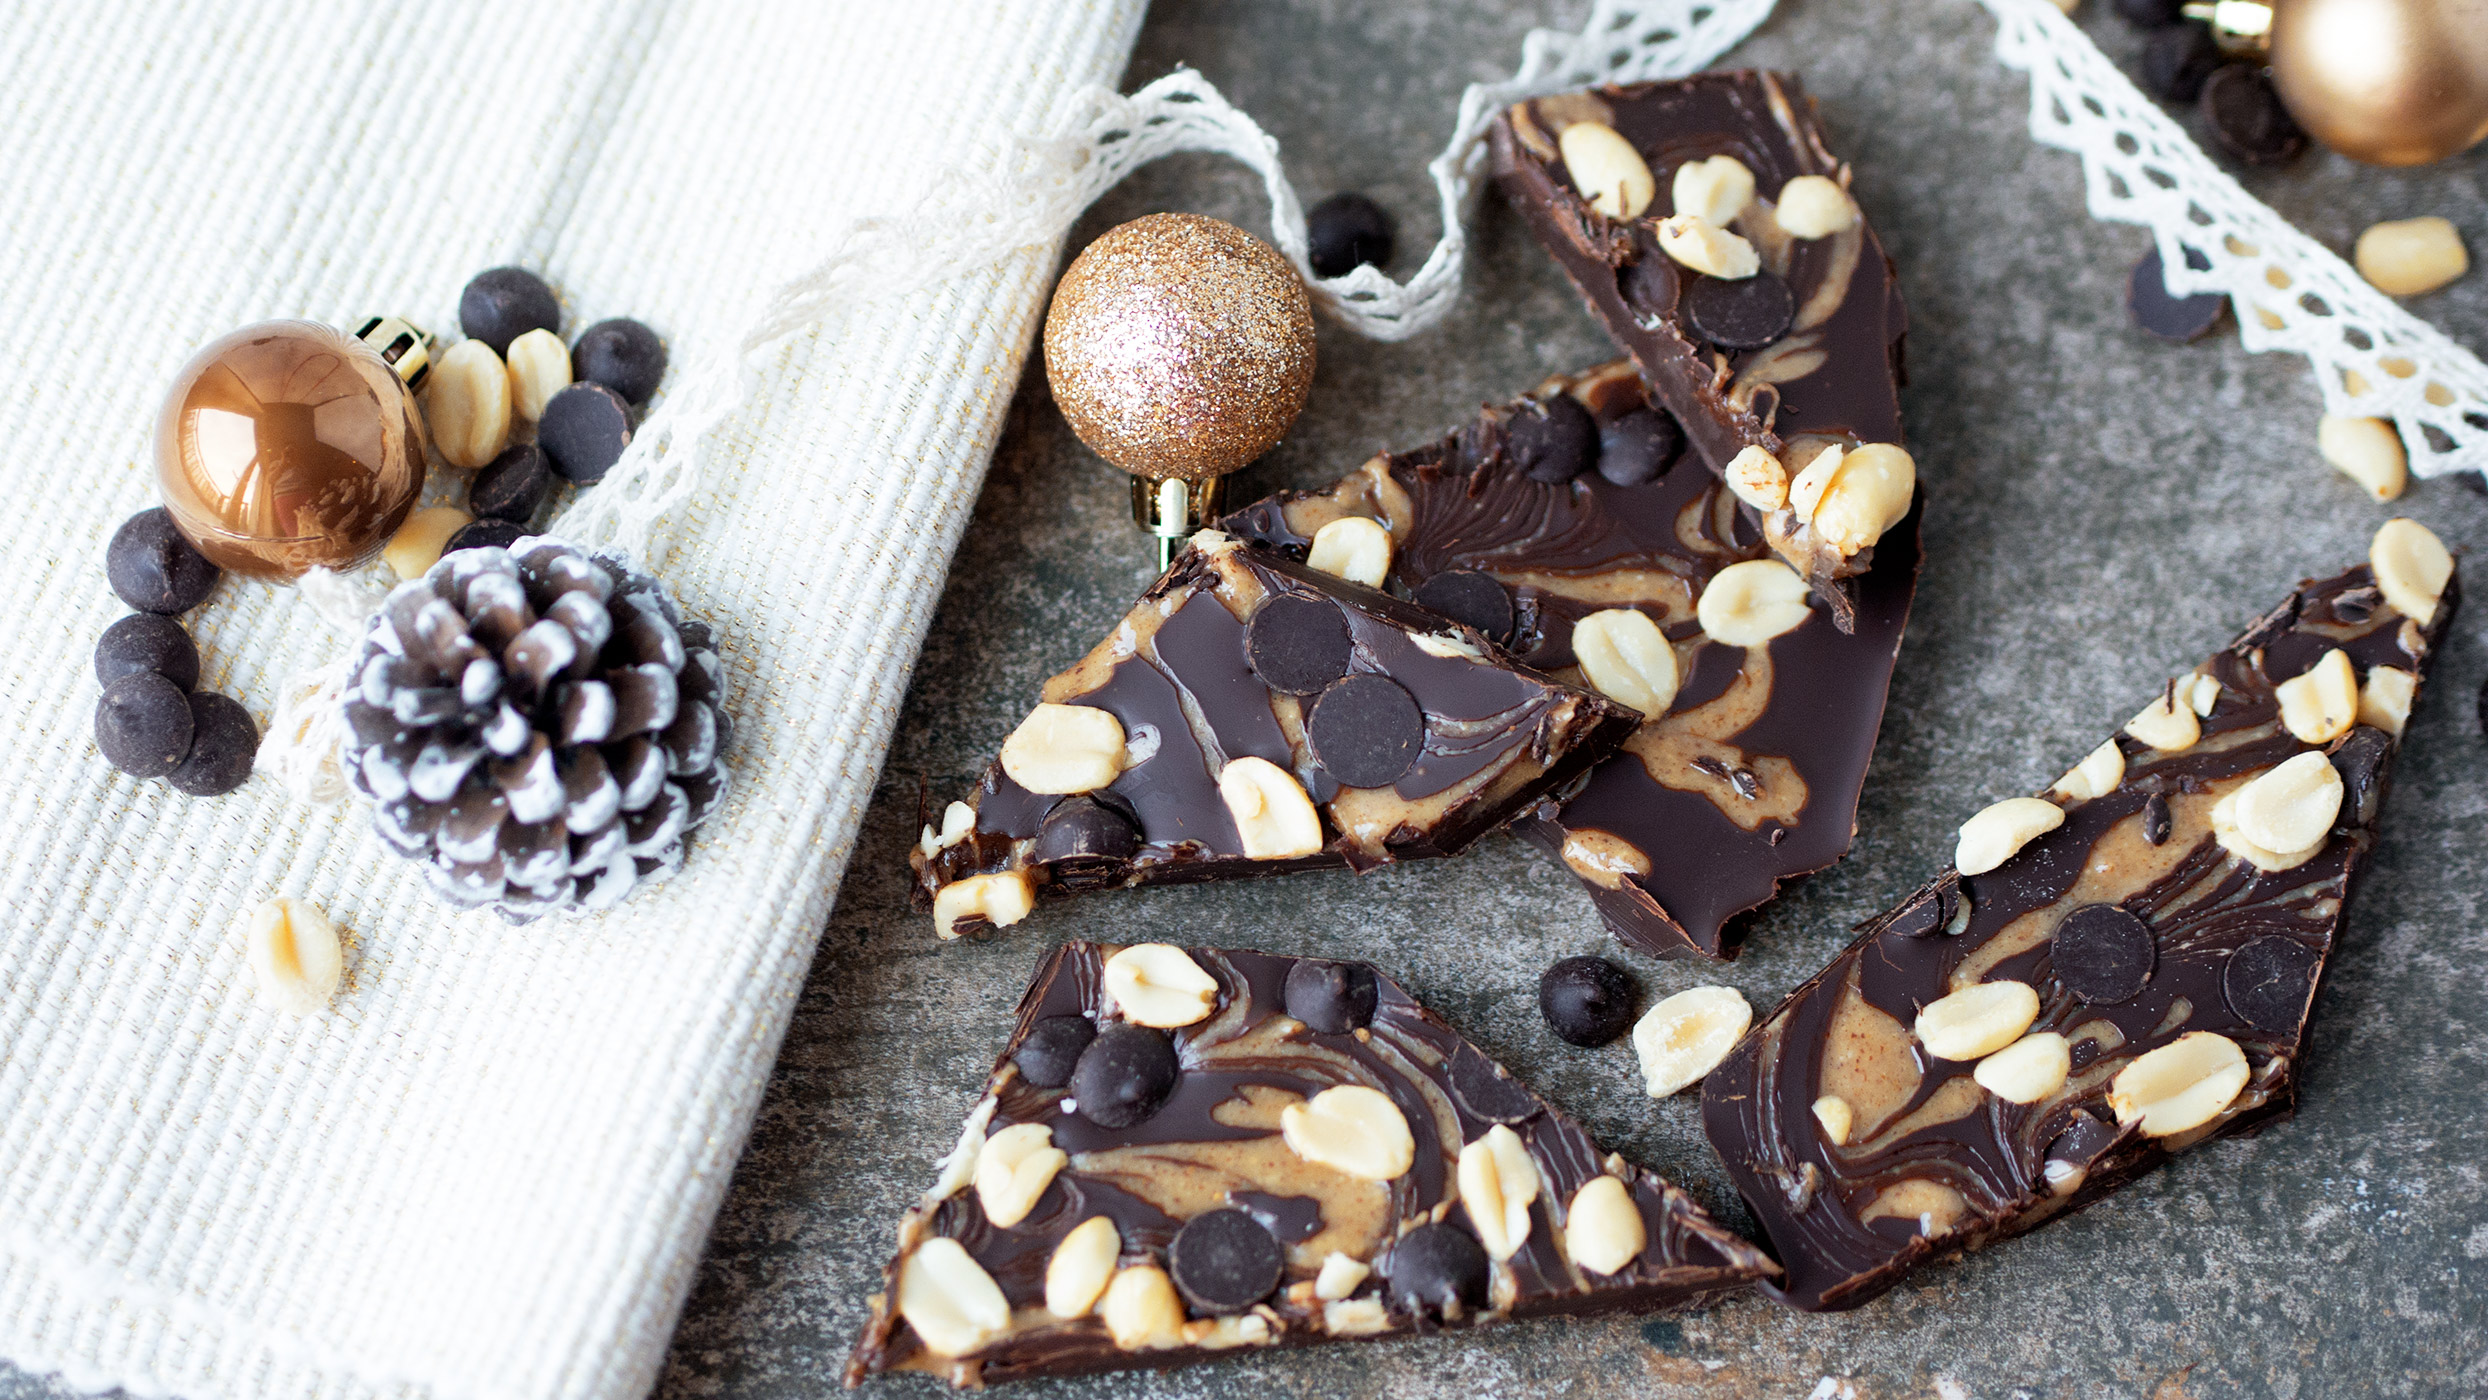 Vegan recipe video: This chocolate peanut butter bark makes the perfect edible Christmas gift